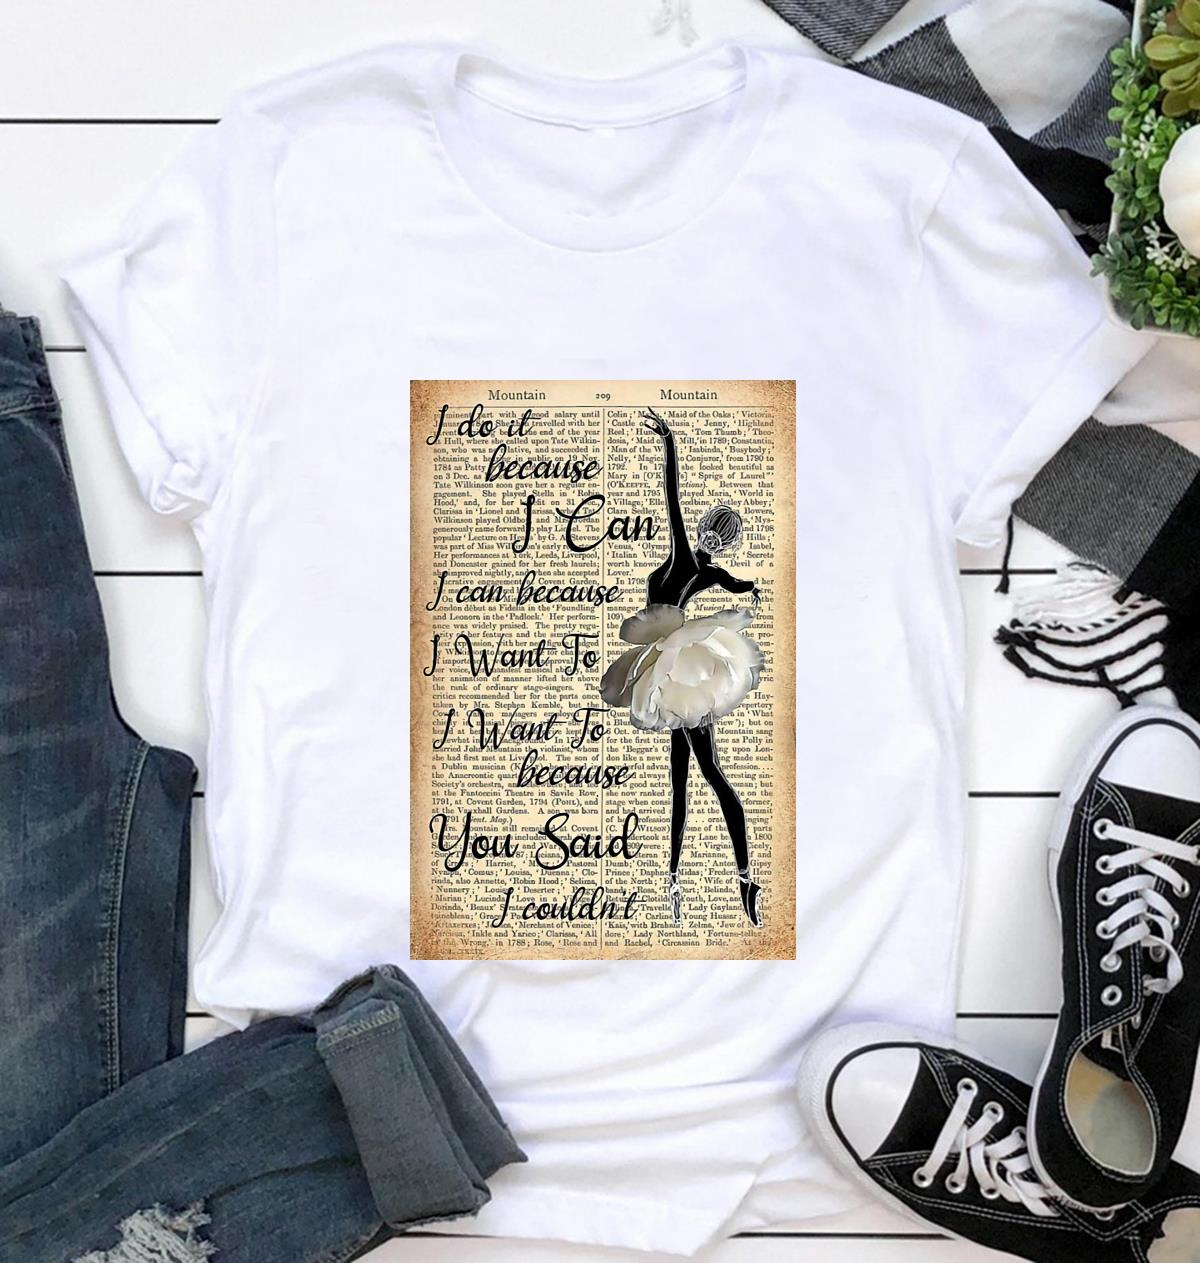 Ballet girl I do it because I can poster t-shirt